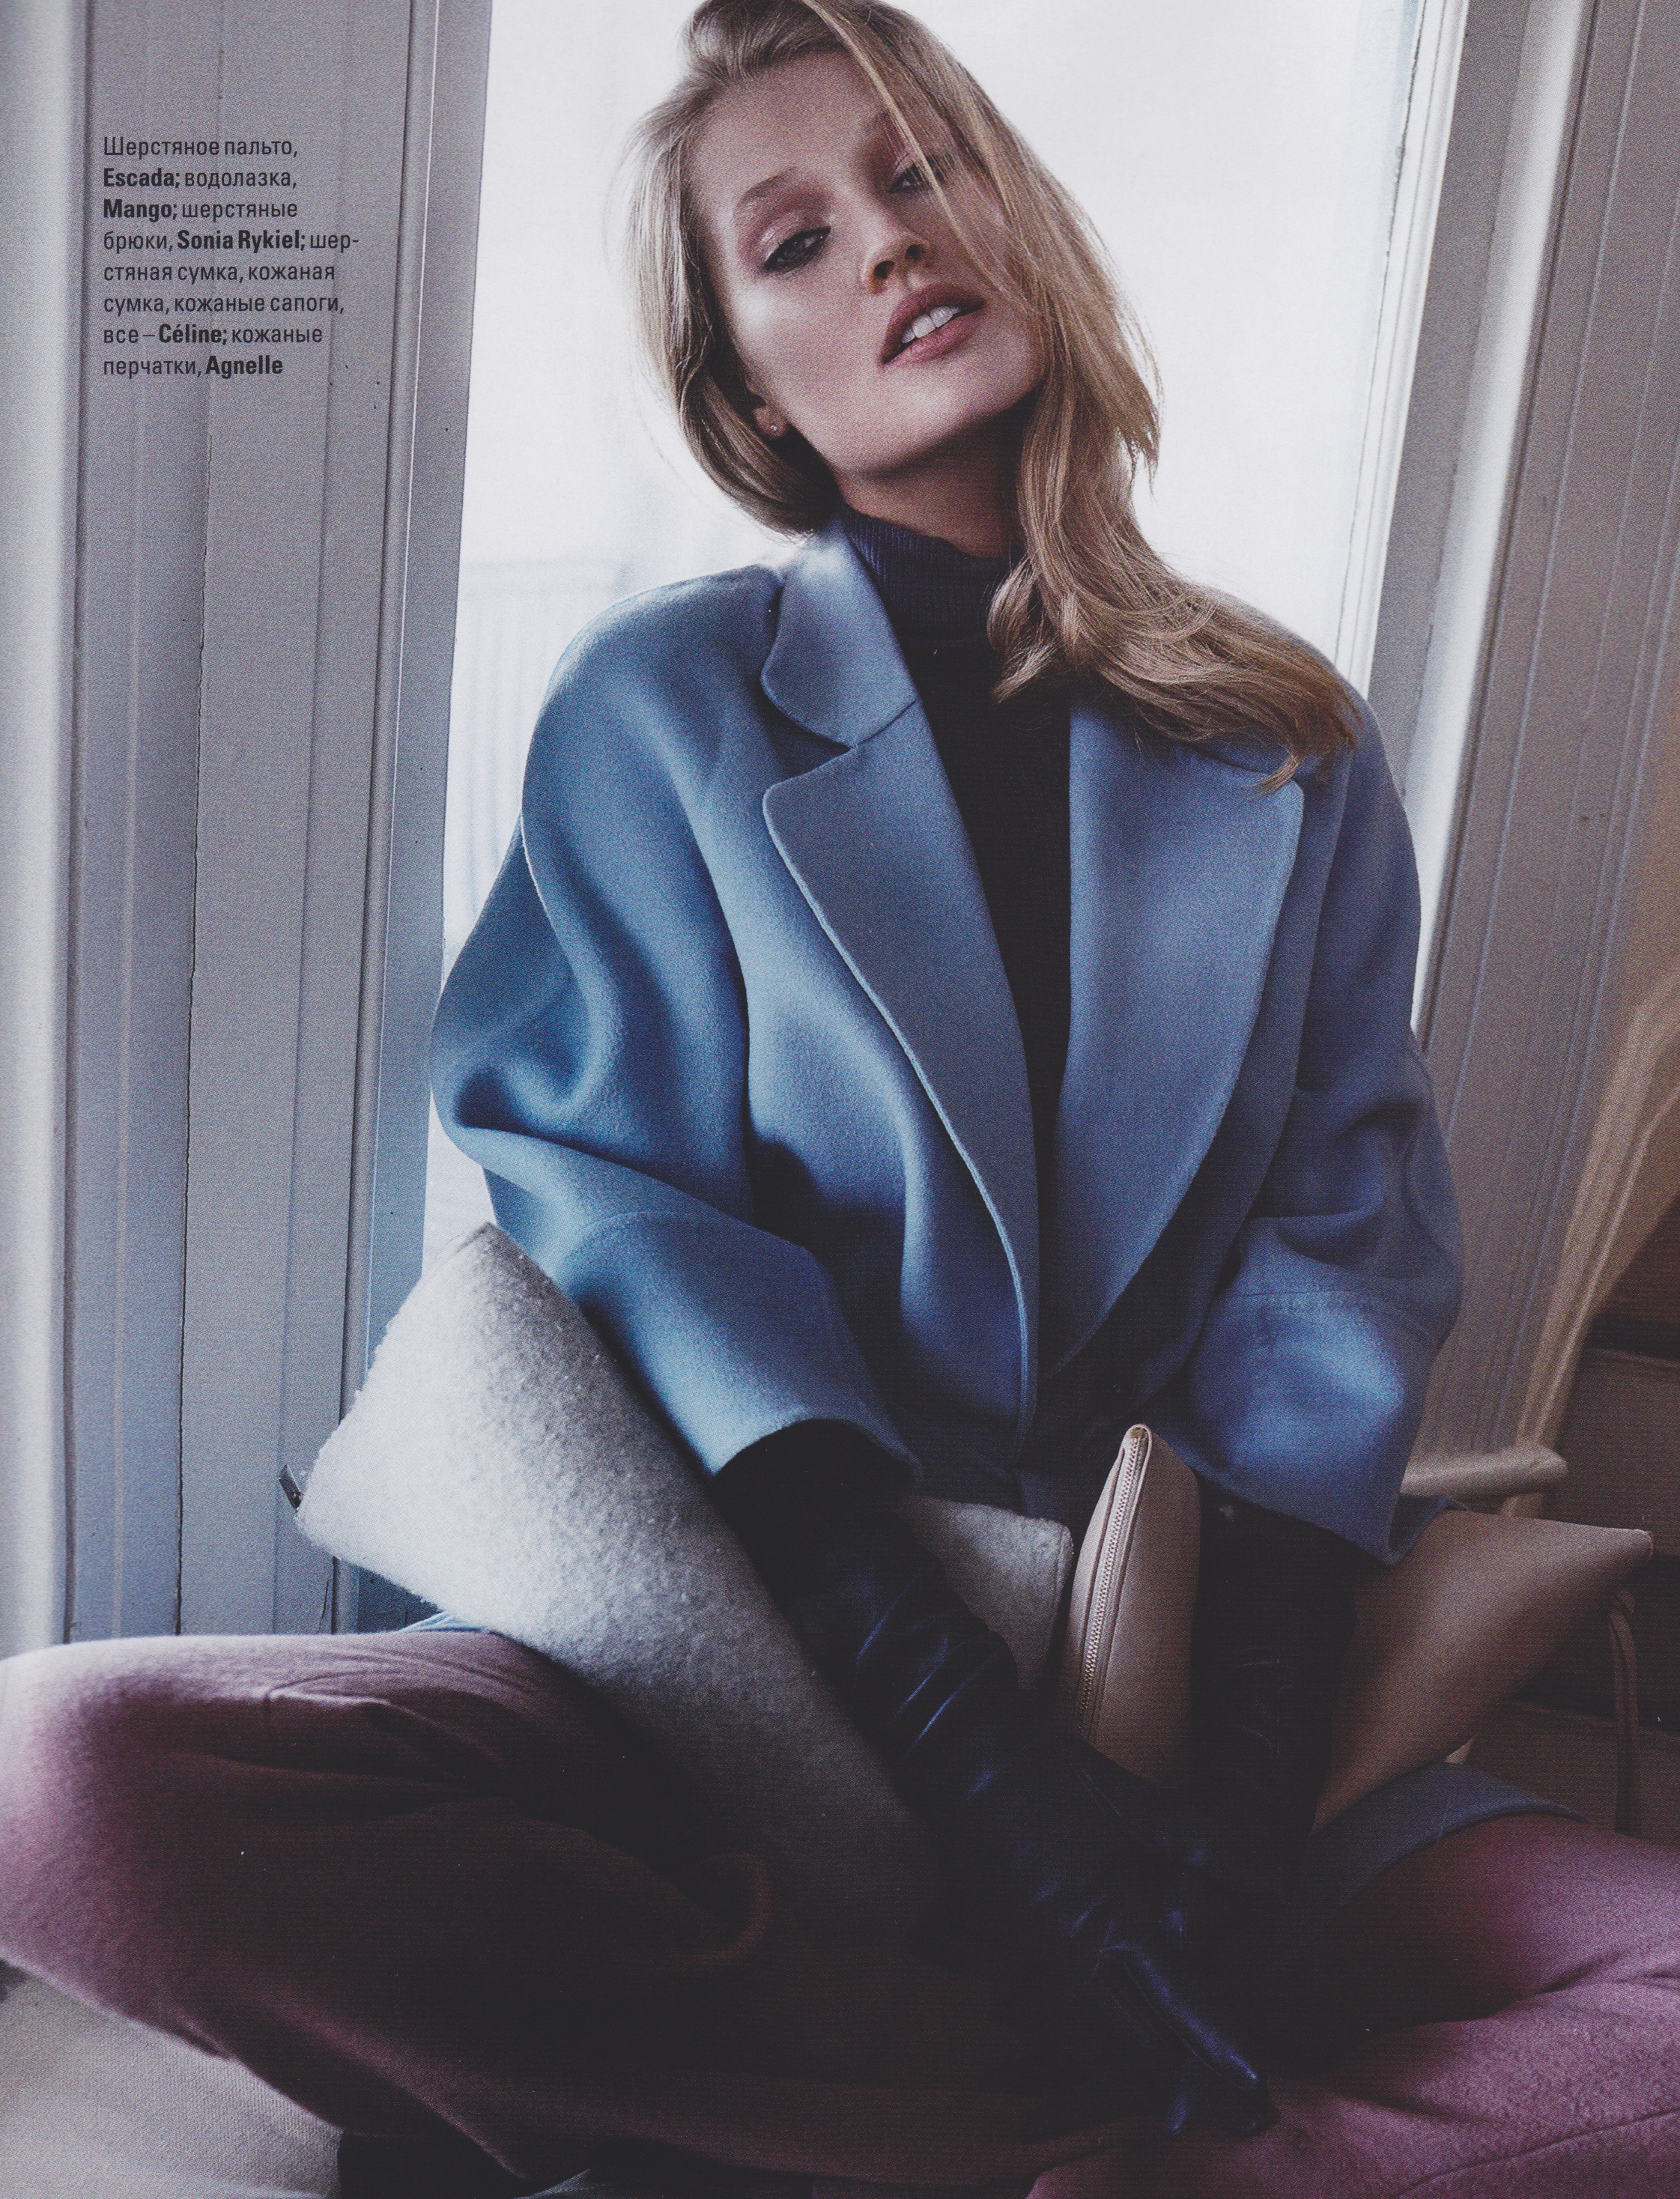 toni garrn photo shoot for vogue ukraine by benny horne and county fair productions 5